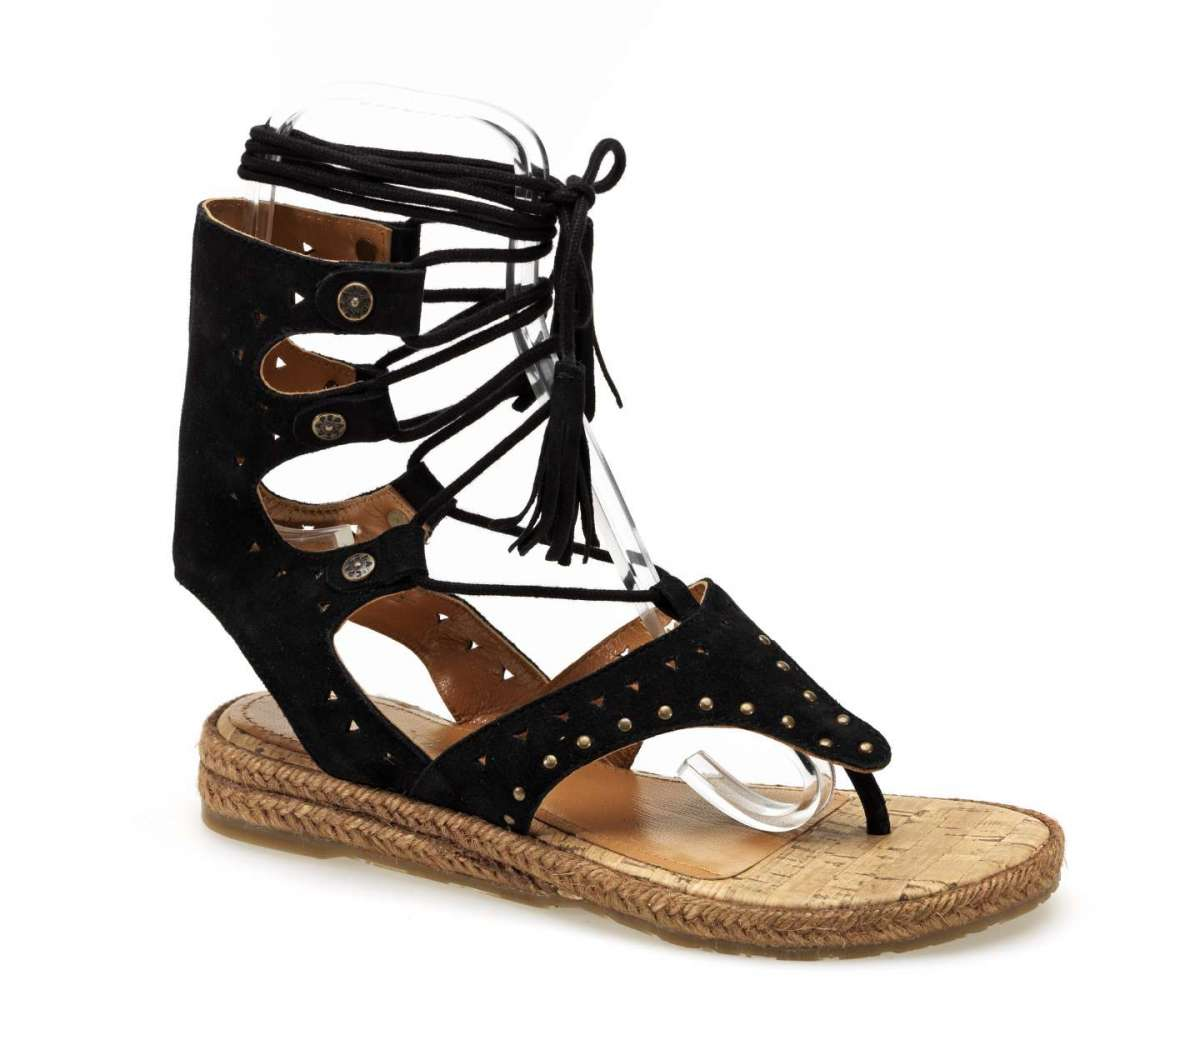 Sandali infradito lace up neri